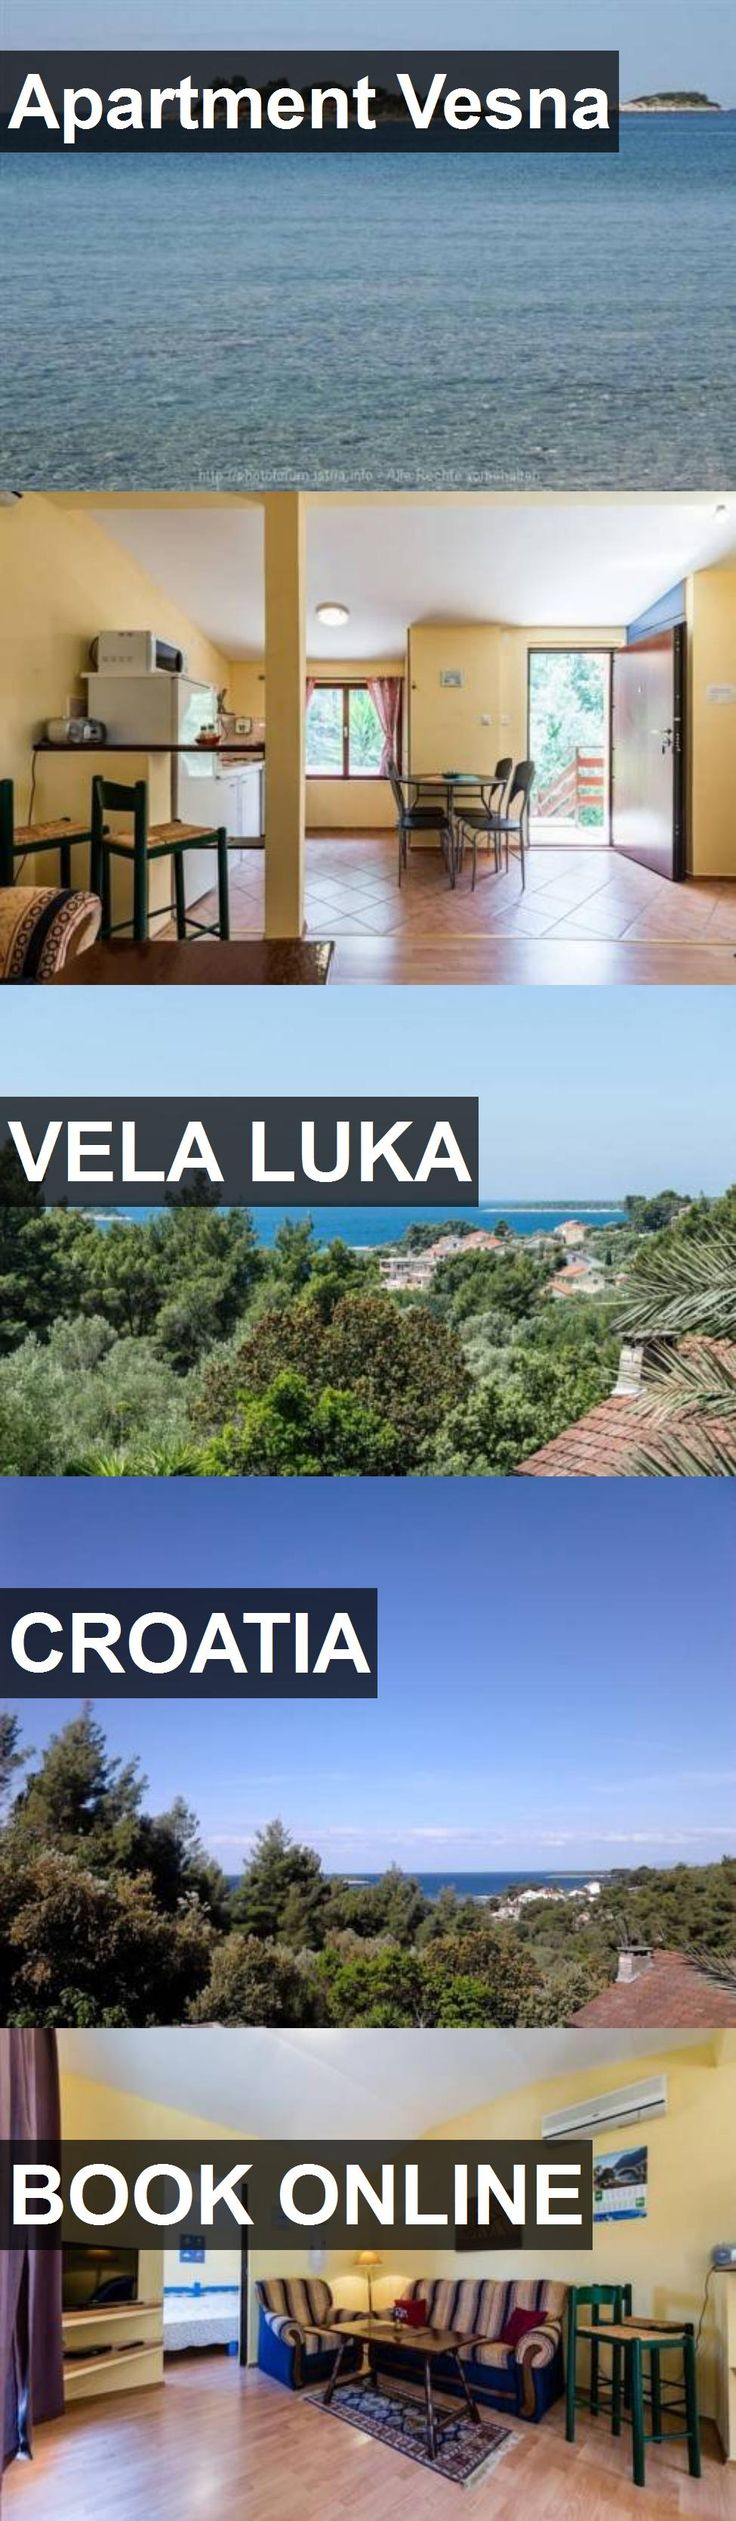 Apartment Vesna in Vela Luka, Croatia. For more information, photos, reviews and best prices please follow the link. #Croatia #VelaLuka #travel #vacation #apartment